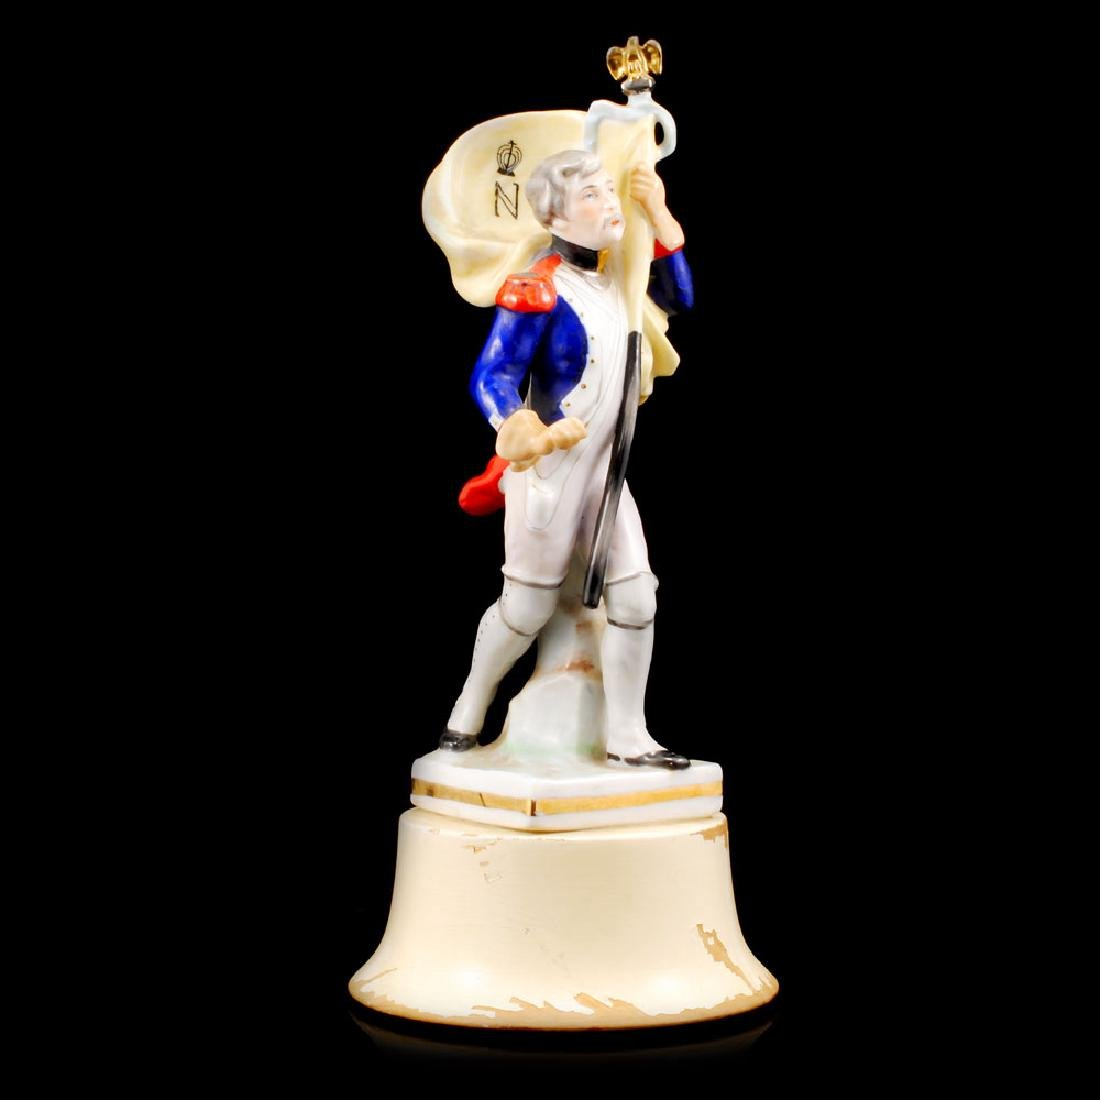 """Euro Porcelain Figurine French Man with Scepter (9.5""""H) - 2"""